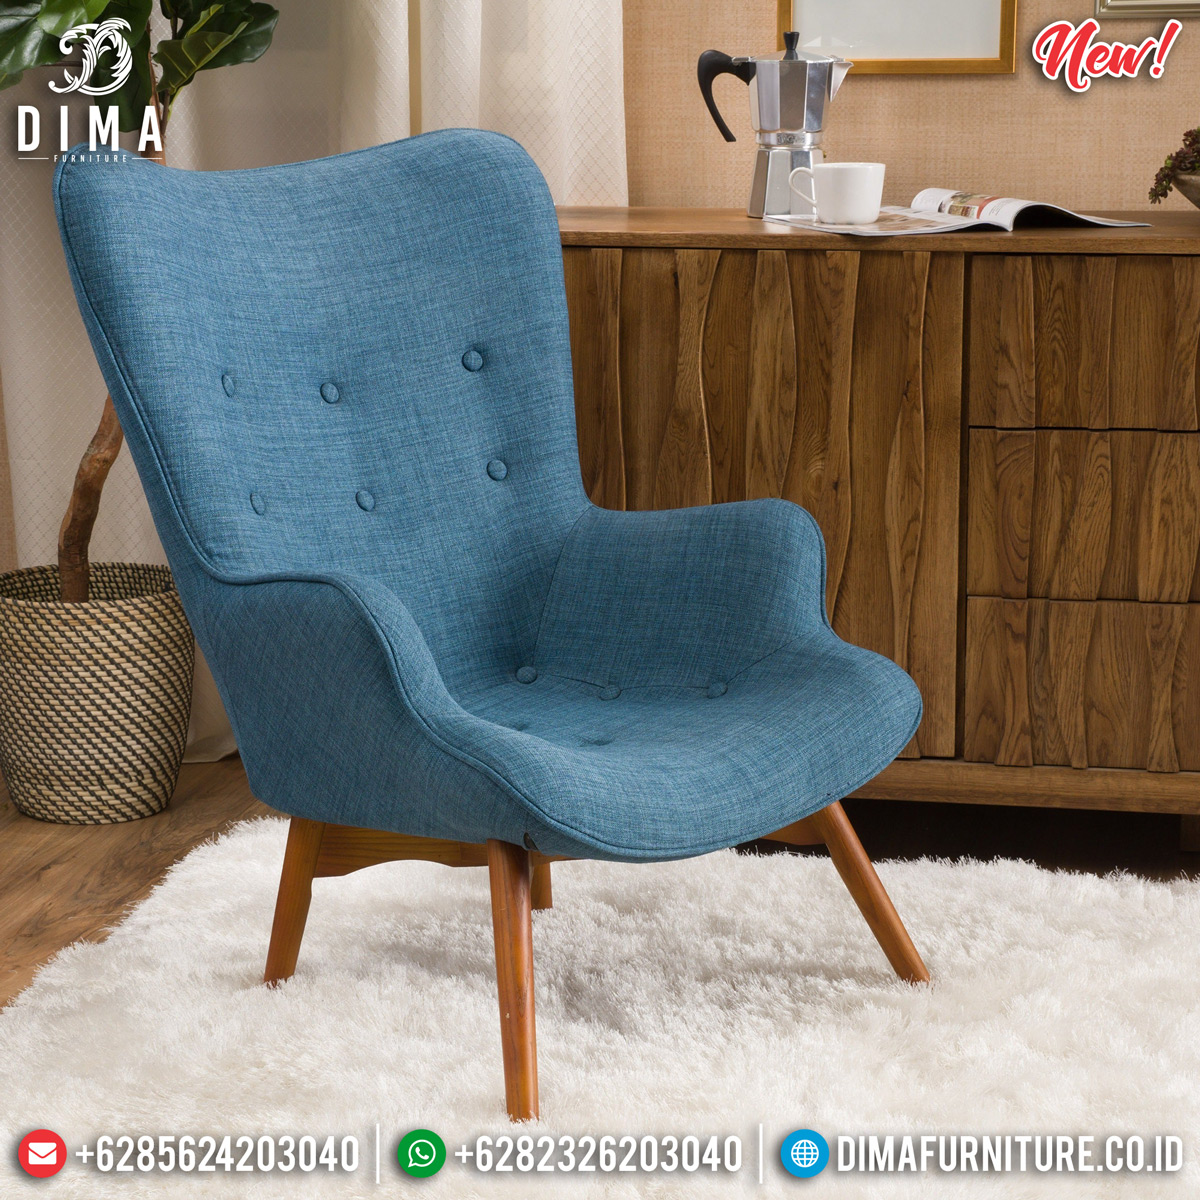 Furniture Jepara Sofa Minimalist Jepara New Design Luxury BT-0733 Desain 1.jpg